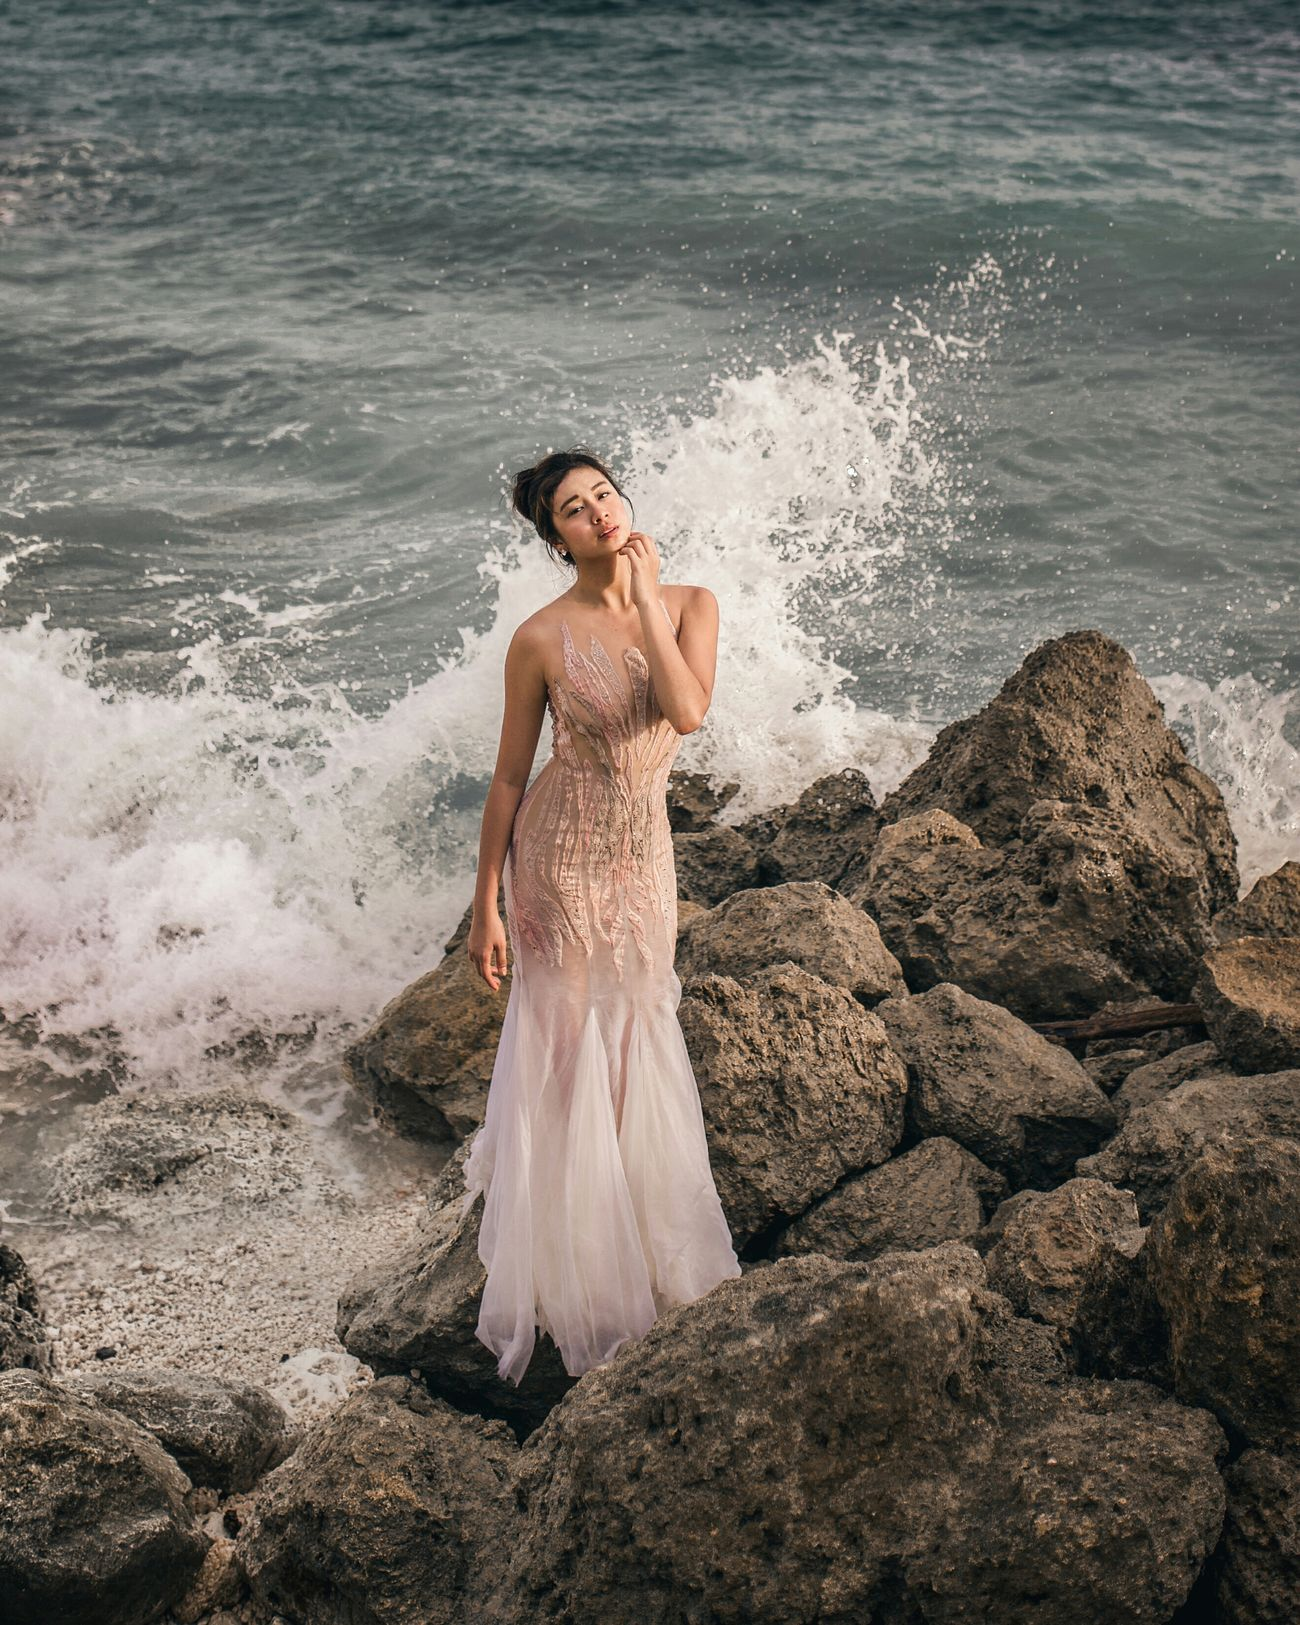 mermaid (gown by Singaporean dress designer Indra Murak) Portrait Of A Woman Portrait Of A Girl Portrait Photography Natural Light Portrait Women Of EyeEm One Woman Only Beautiful People Outdoors Sea Wedding Dress Mermaid Beach Sand Golden Hour Fashion Fashion Photography Editorial